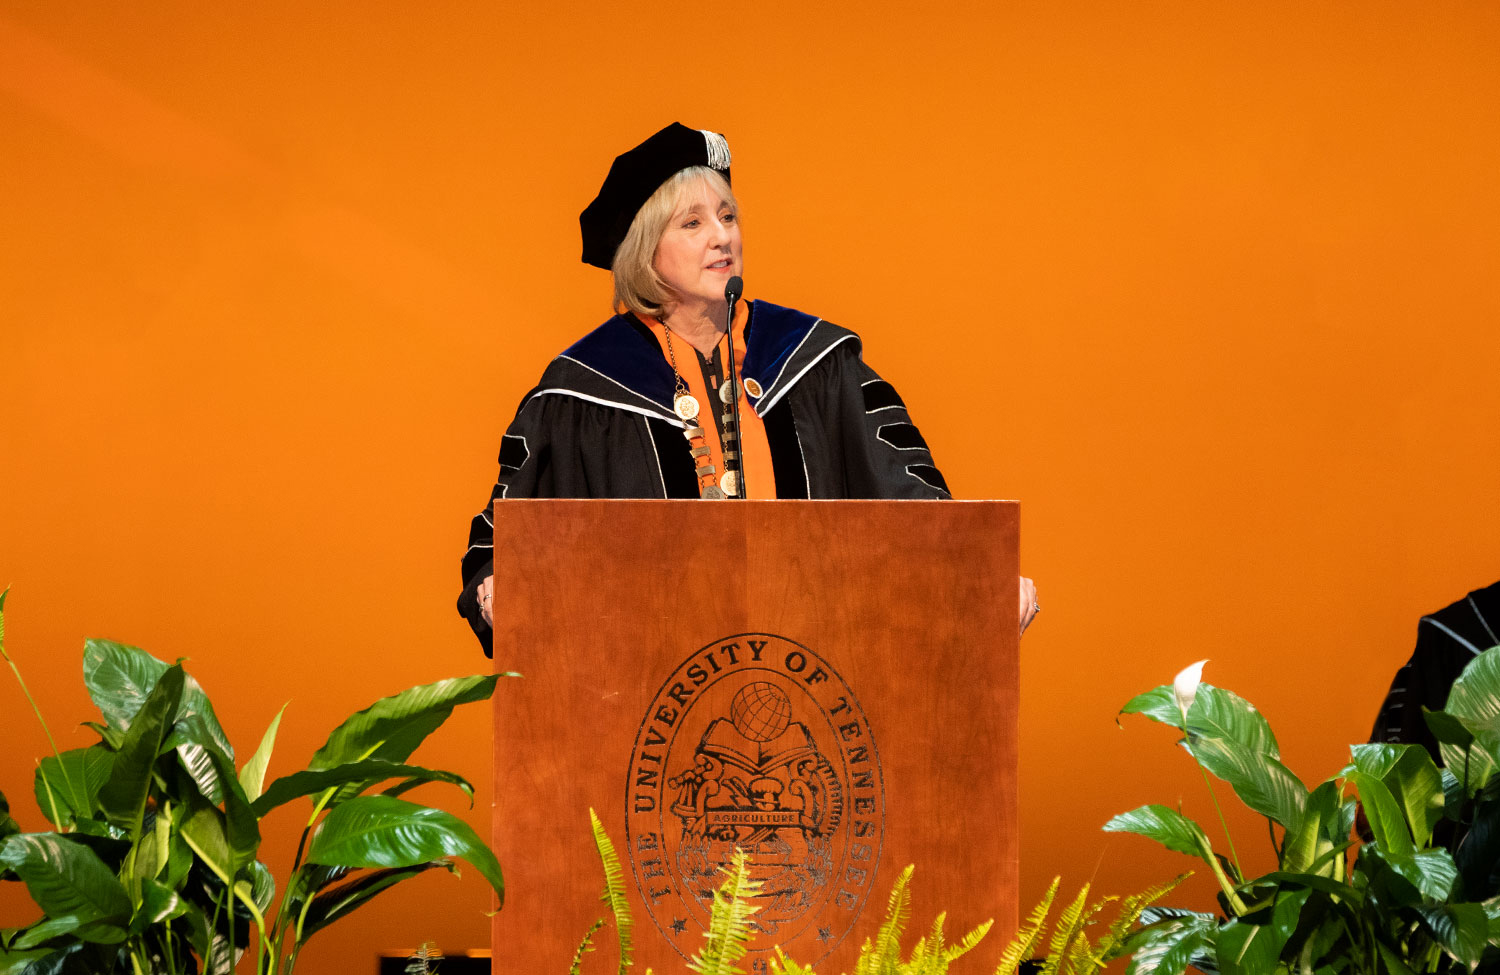 Chancellor Plowman at investiture